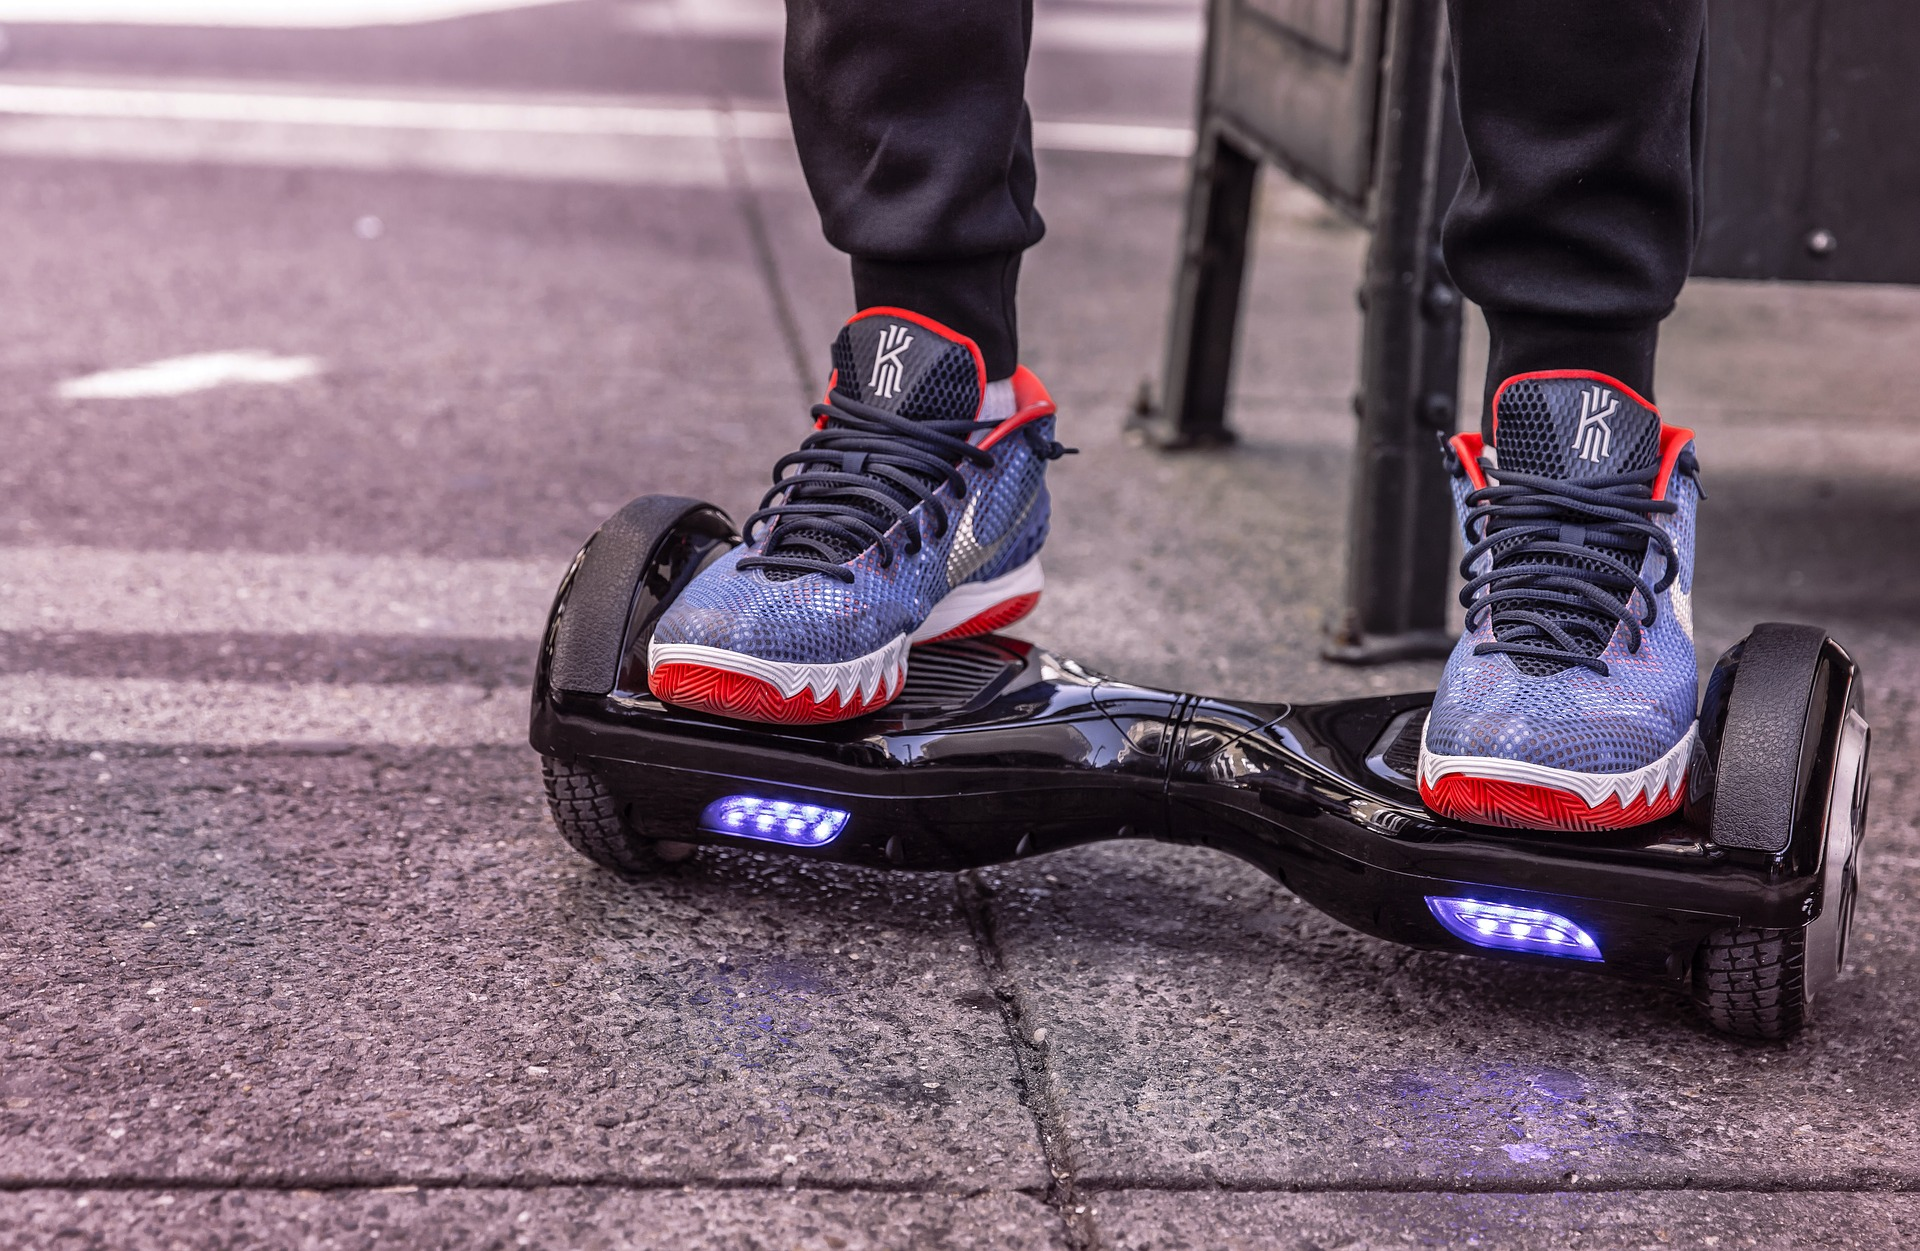 Top 10 Cele Mai Tari Hoverboard-uri in 2019